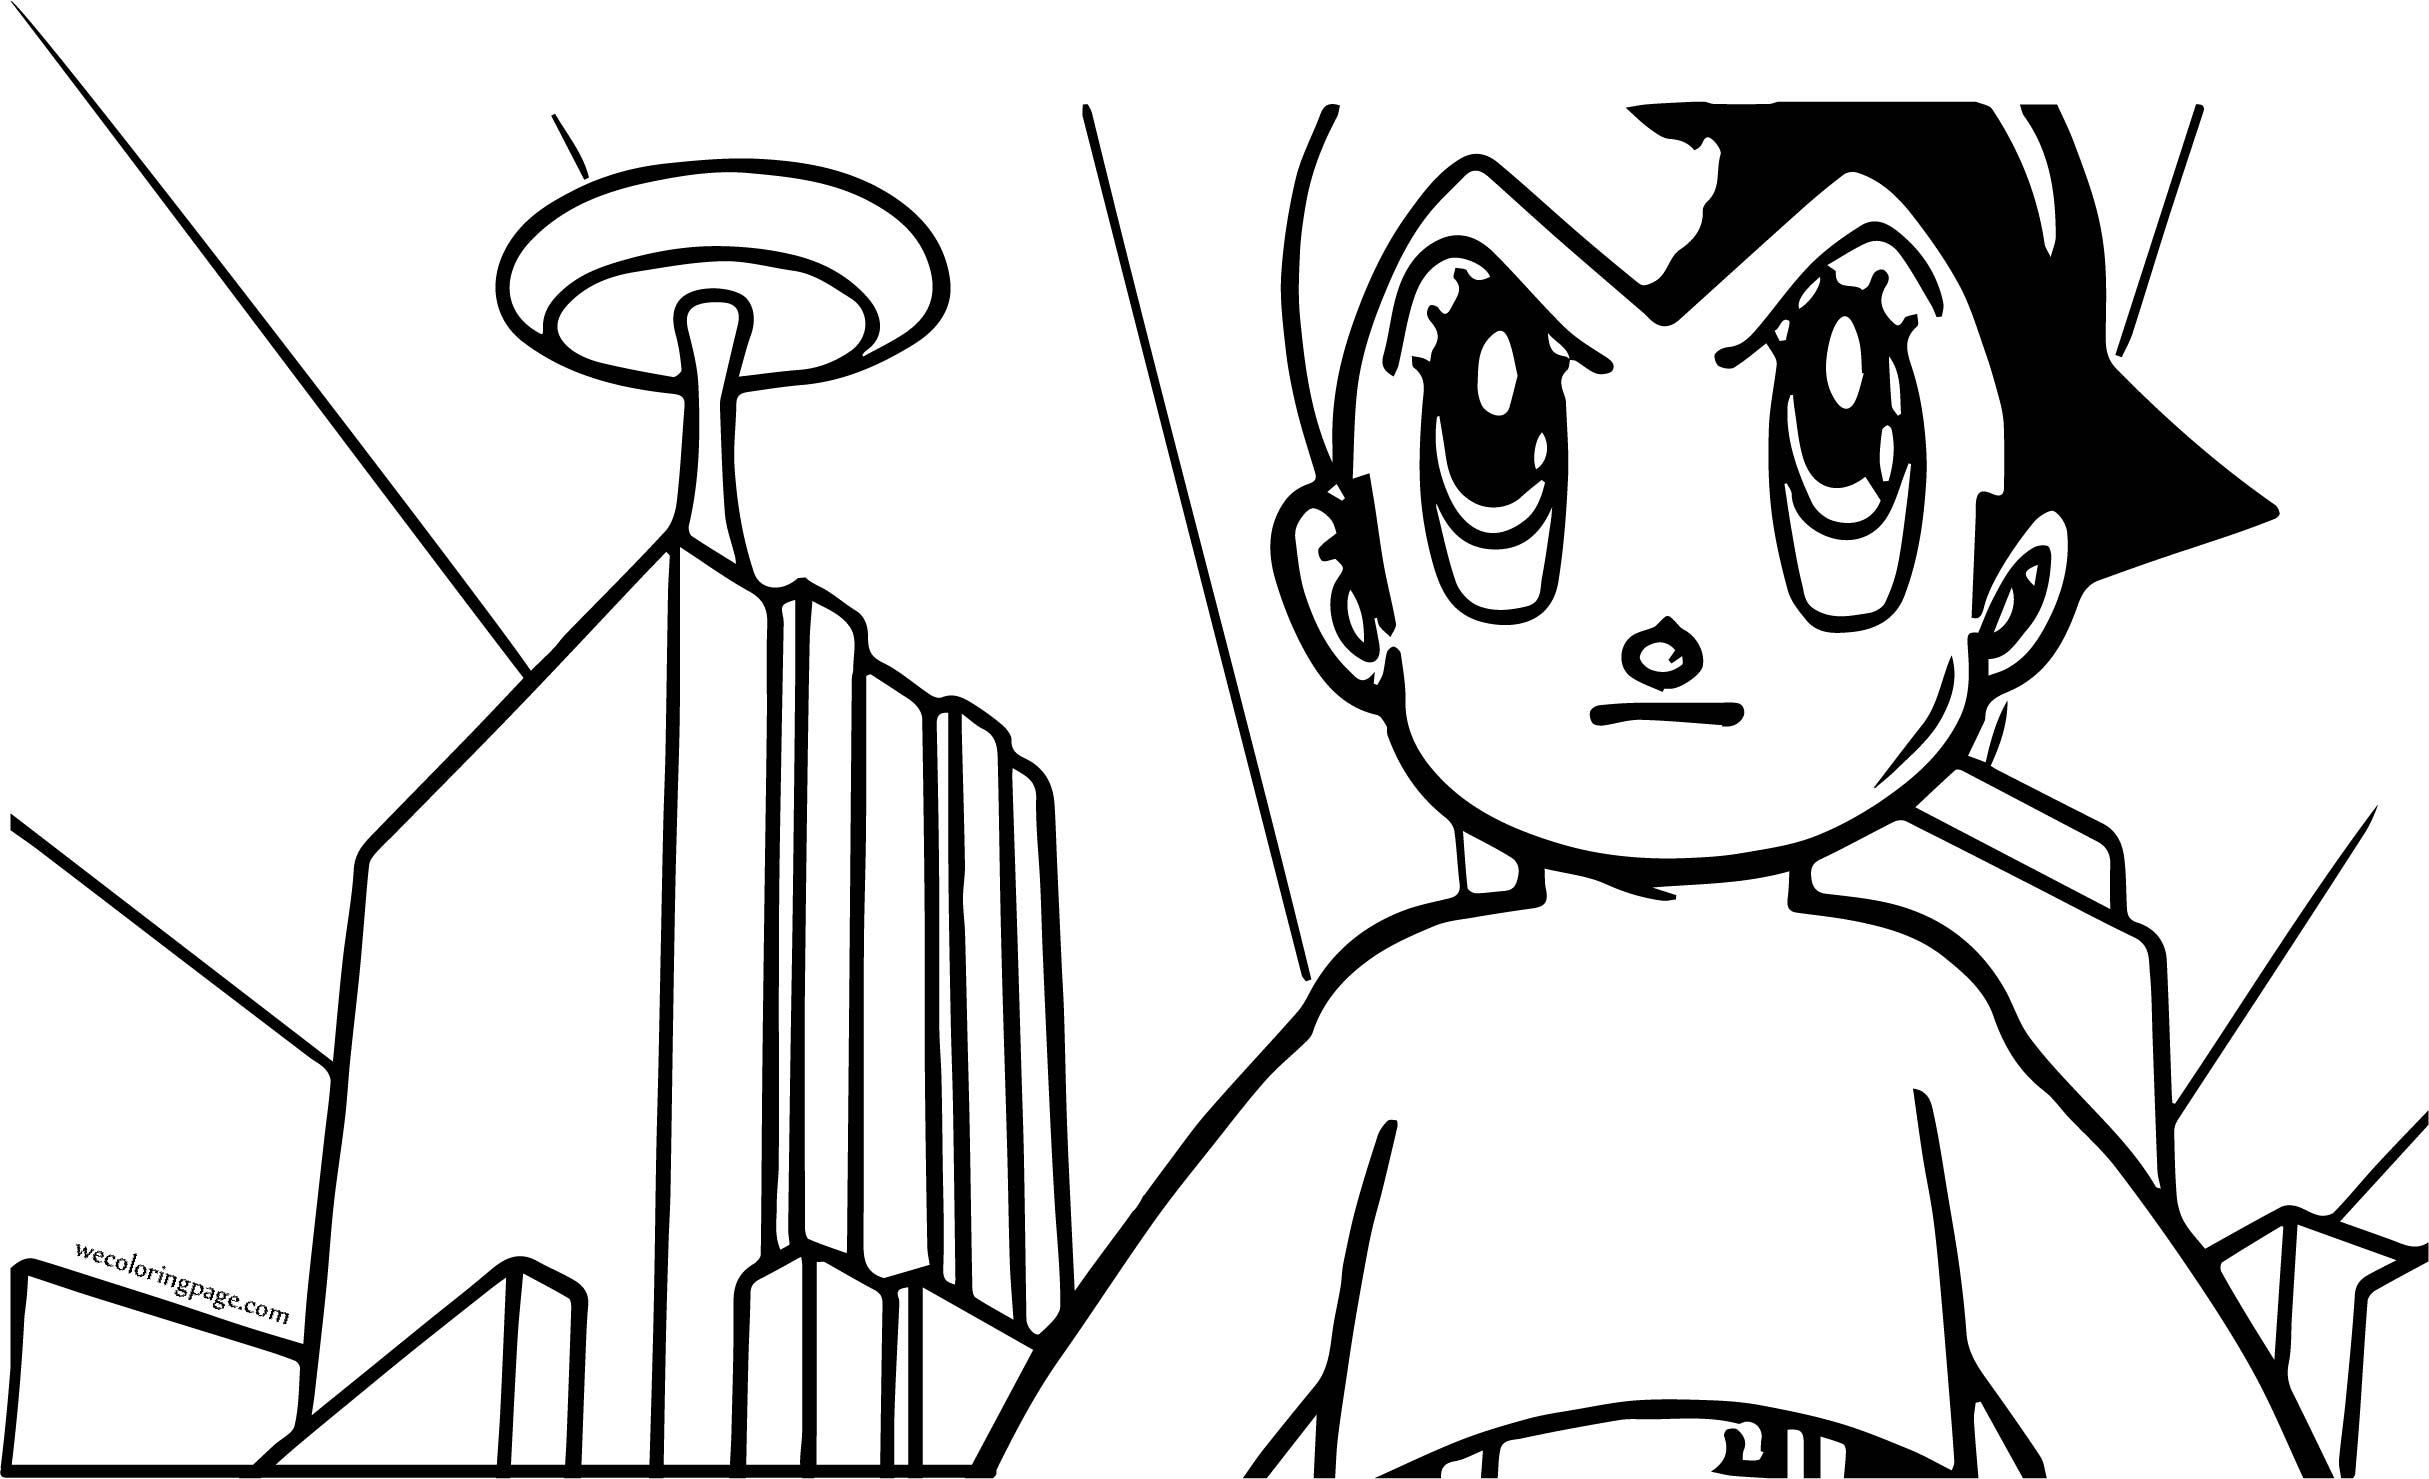 Astro Boy City Background Coloring Page